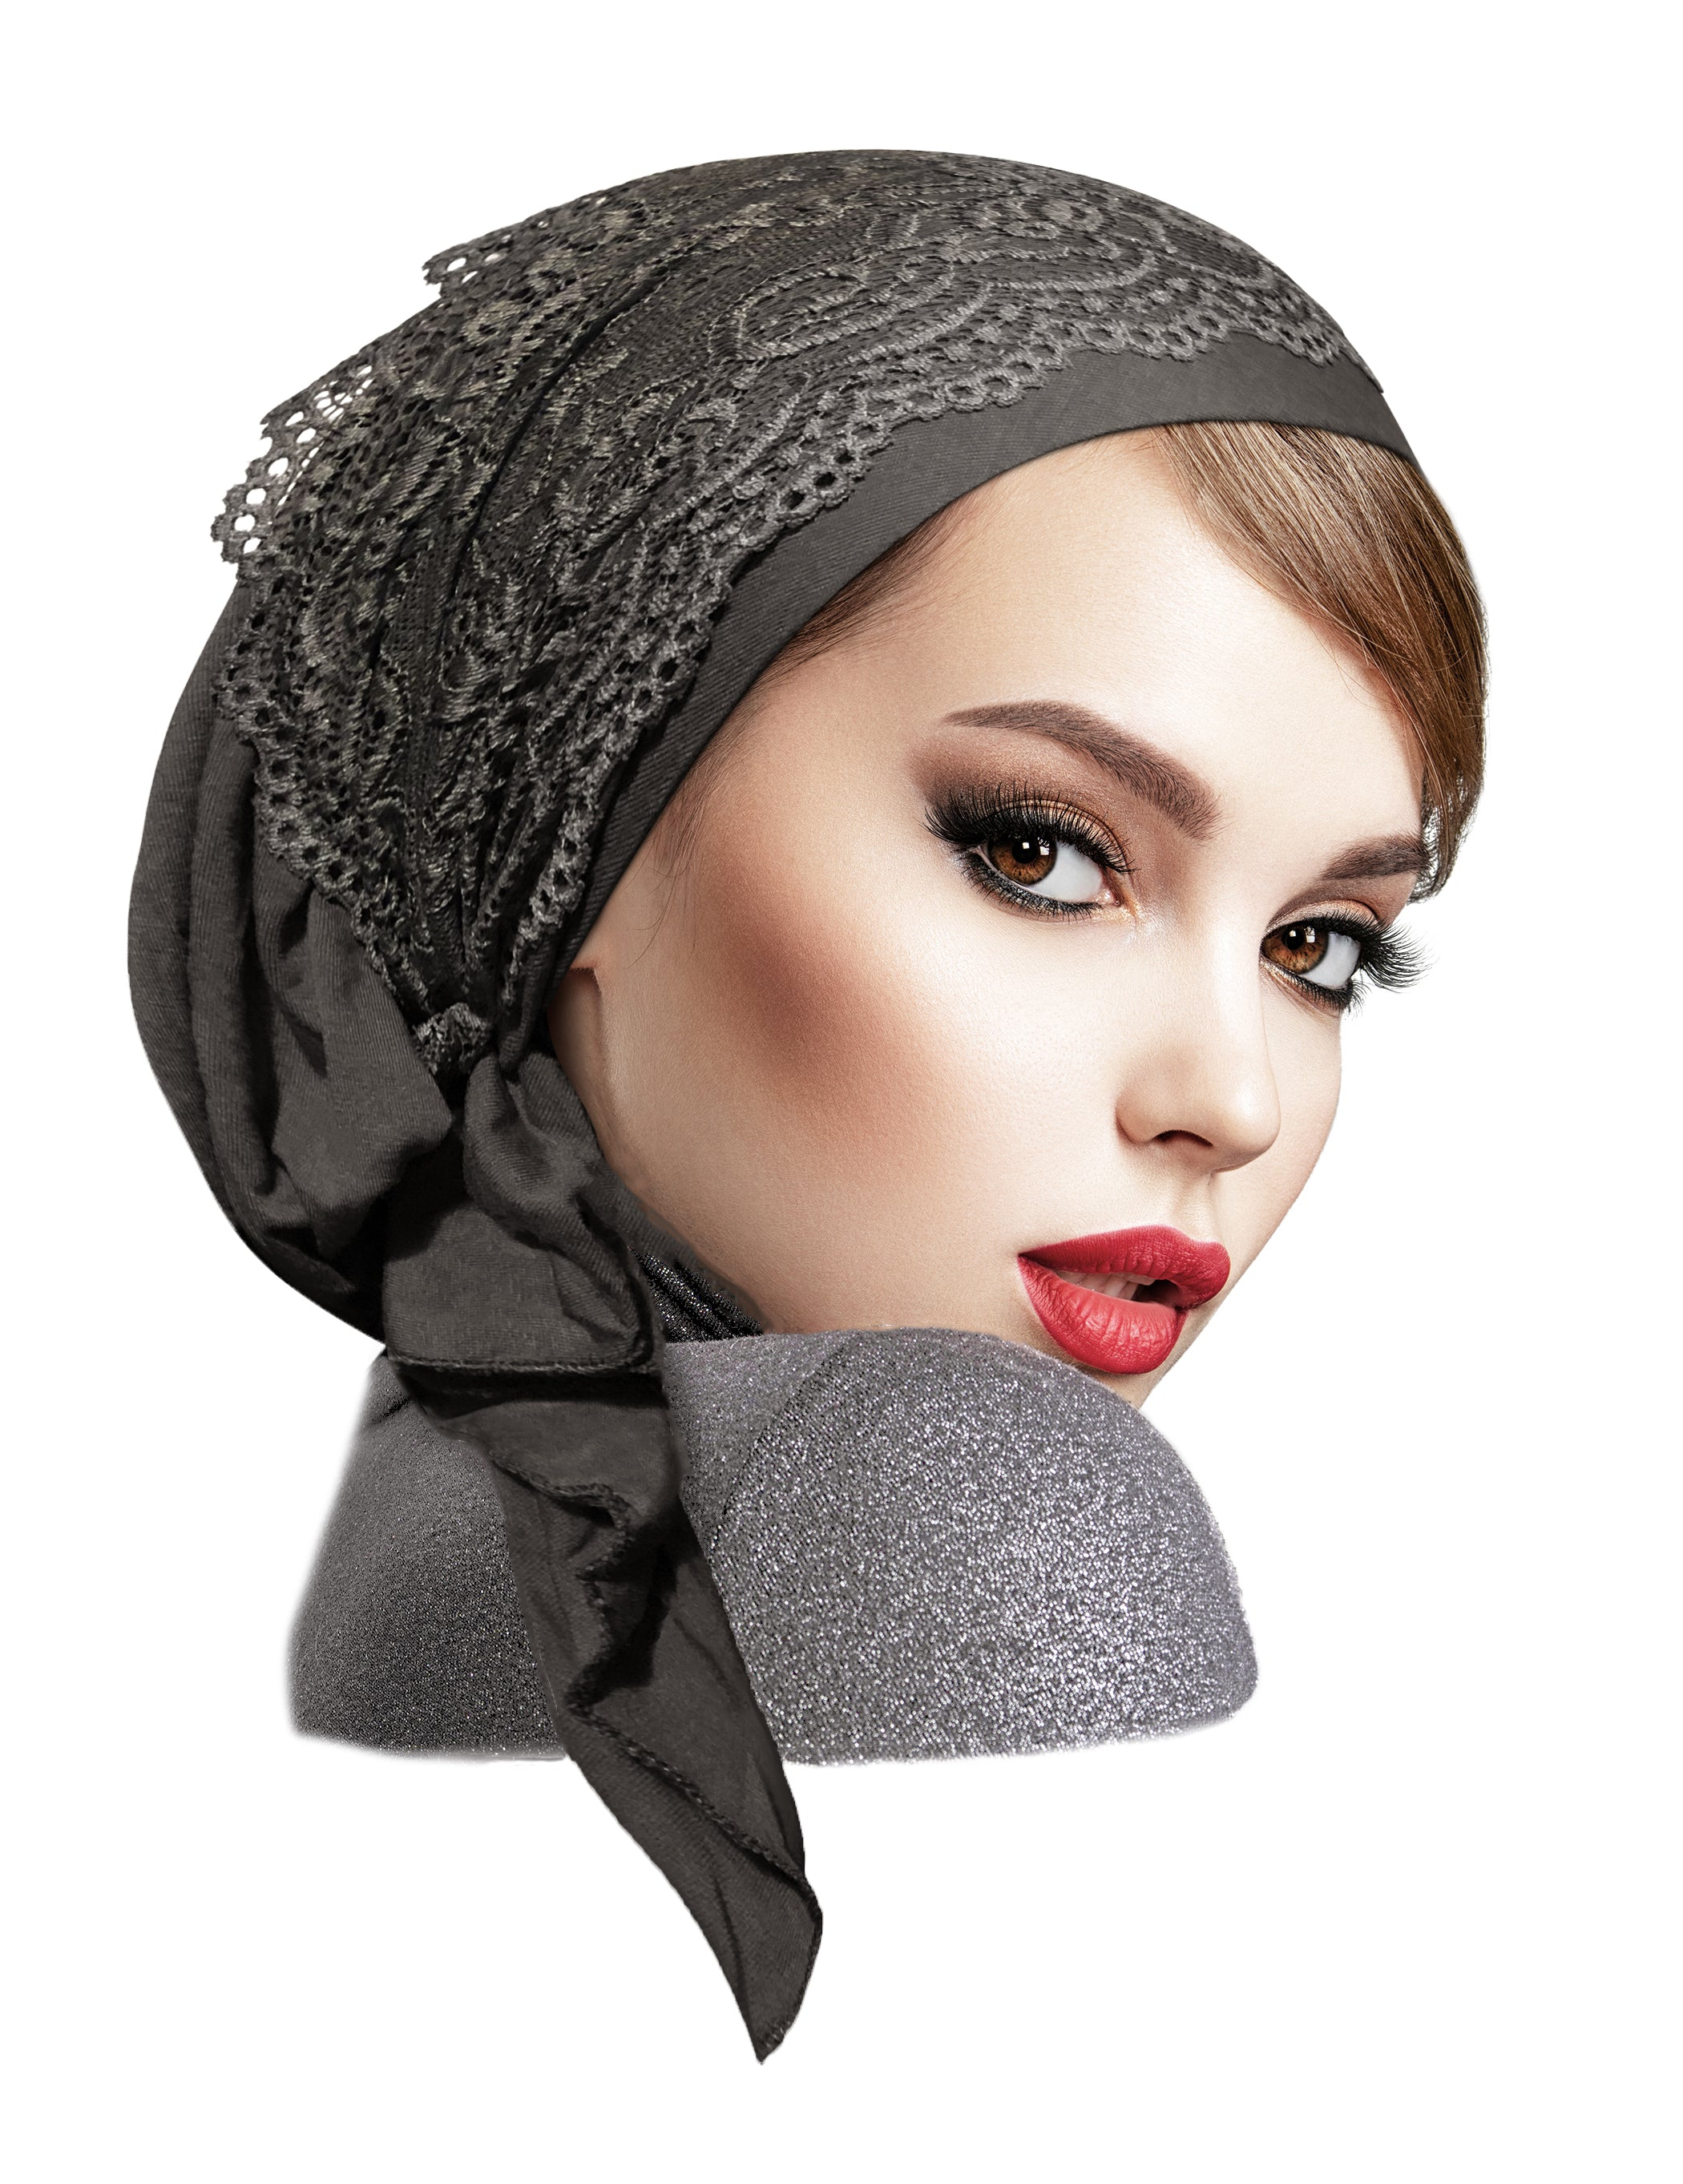 Headscarf with lace